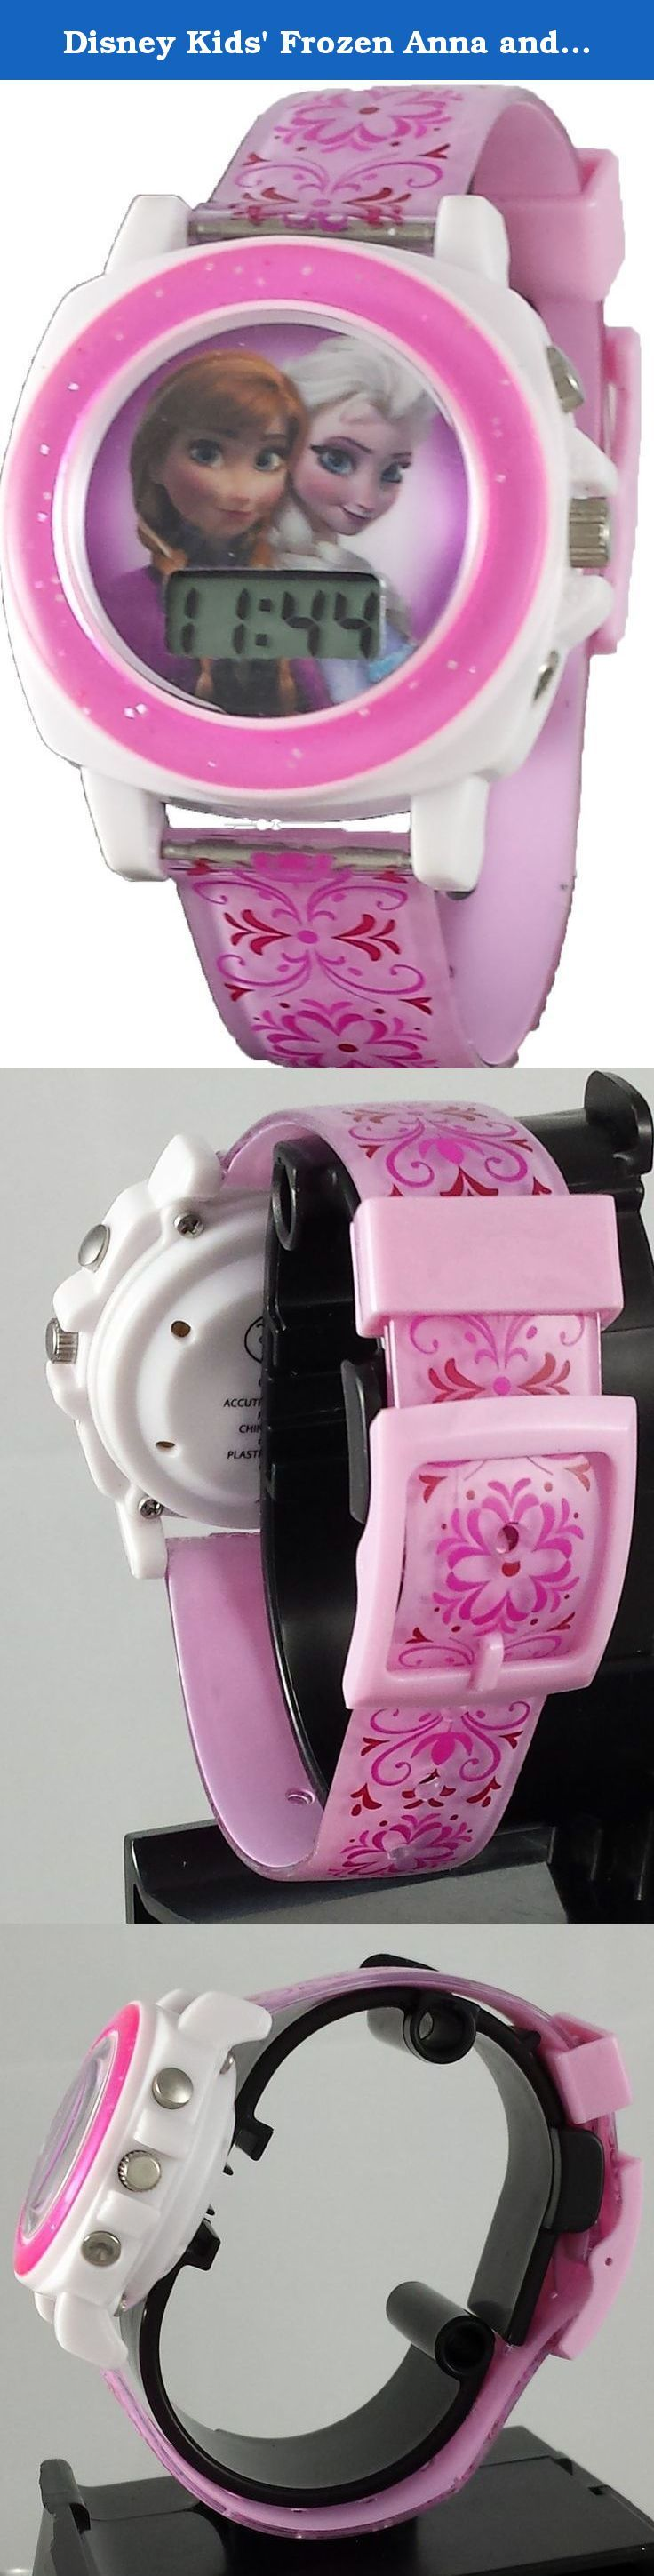 "Disney Kids' Frozen Anna and Elsa Musical ""Let It Go"" Digital Watch with Pink Band. This watch by pressing the button on the top right corner of the face of the watch will play the hit song ""let it go ""from the movie. It is very clear and loud to make all your little ones start dancing."